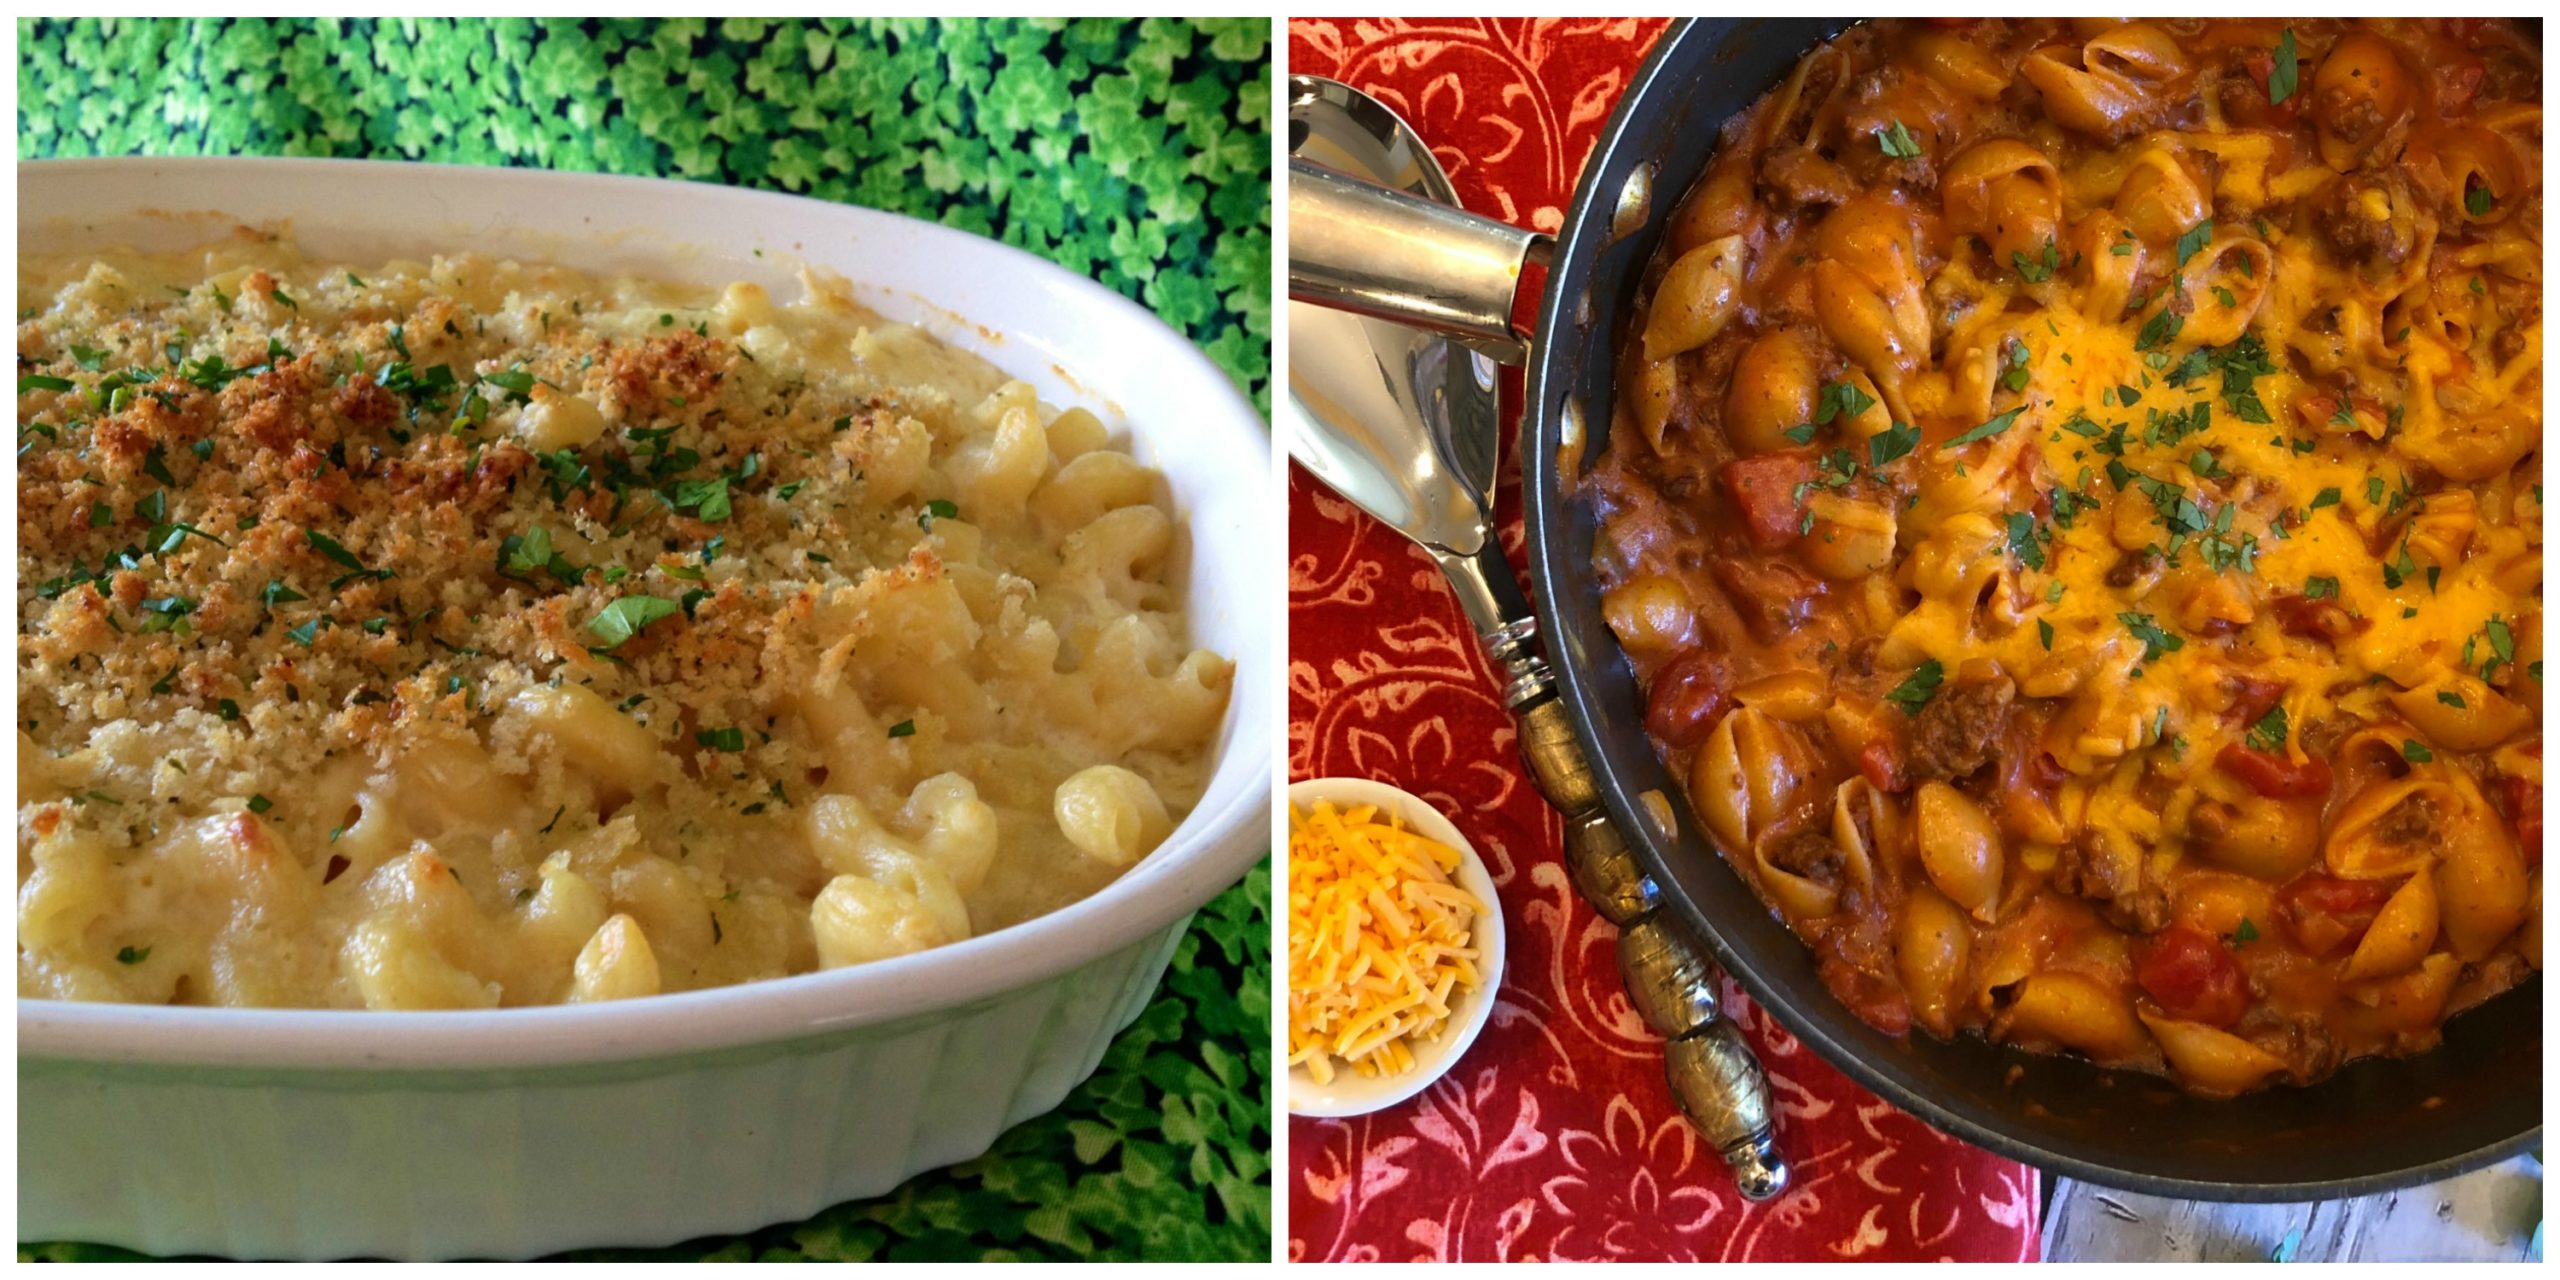 Irish /cheddar Mac and Cheese and Chili Mac and Cheese